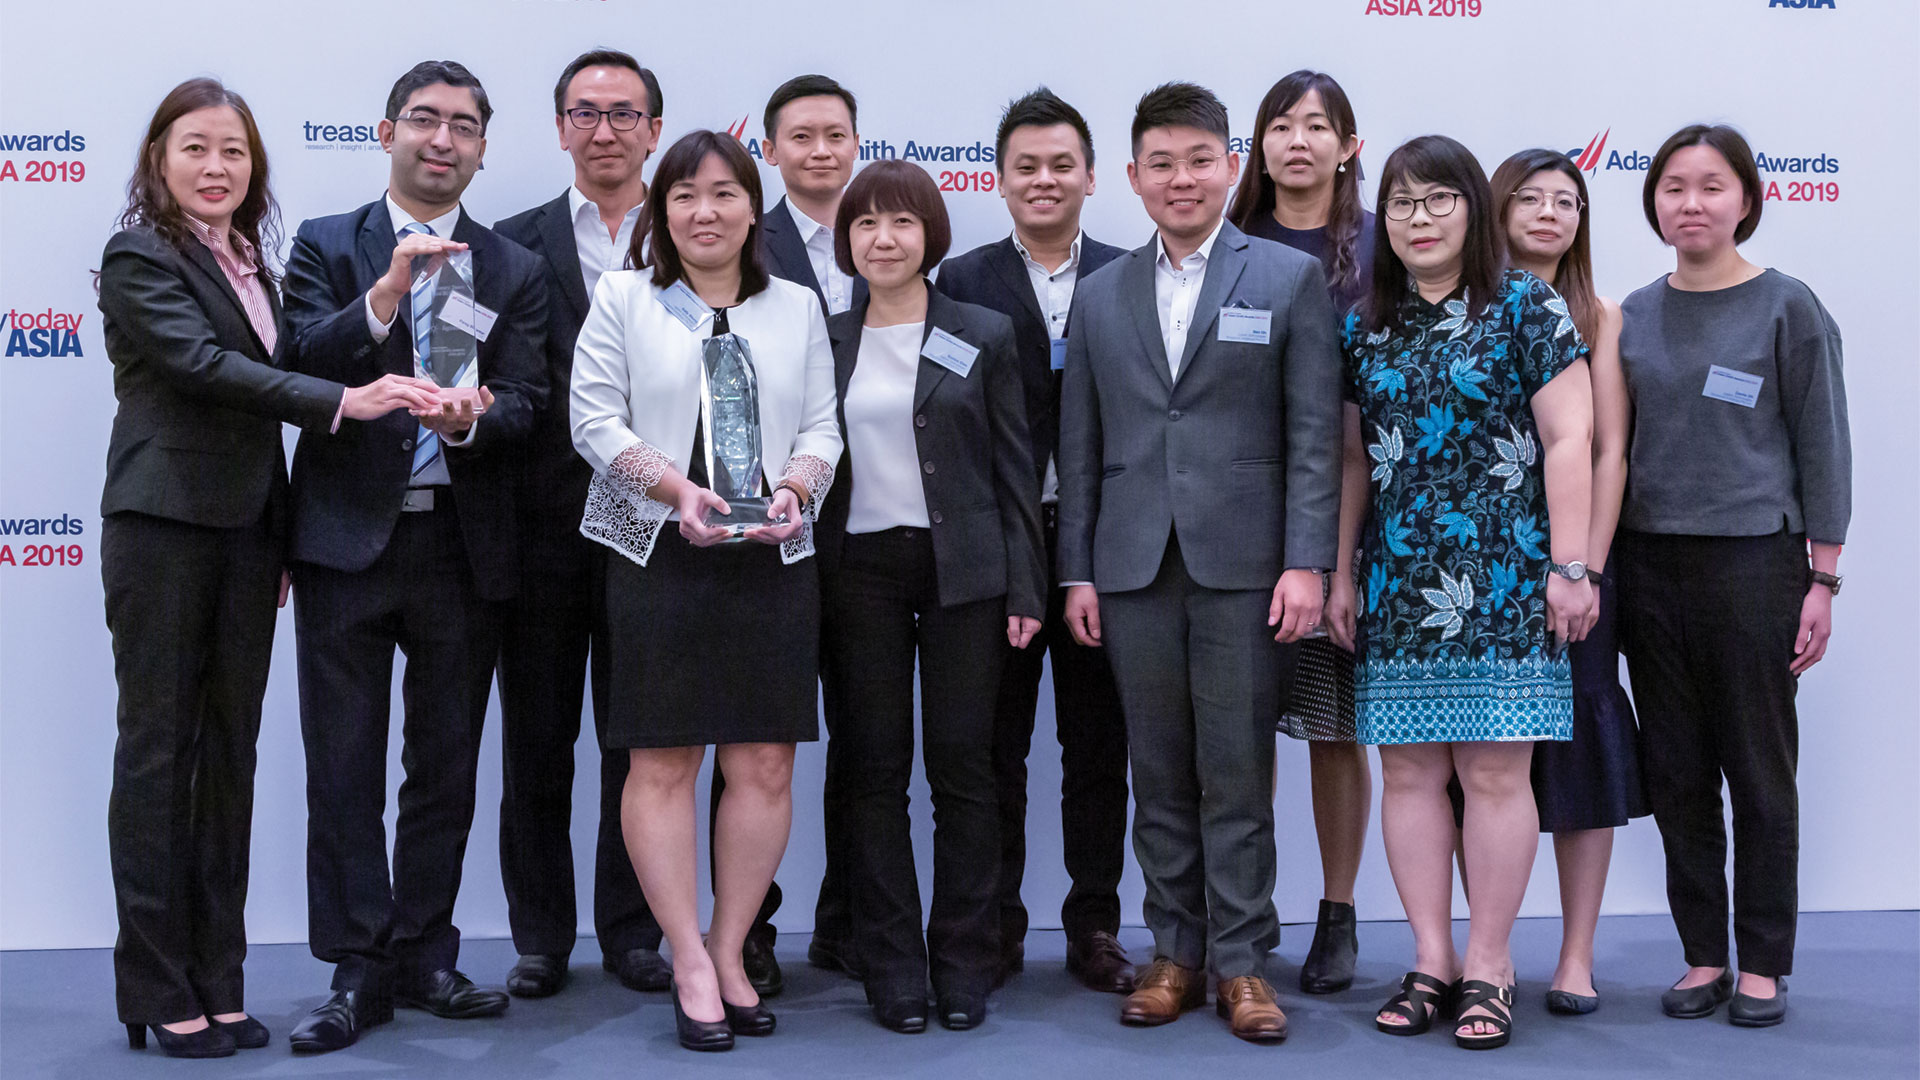 Photo of Linda Wu, Agilent Technologies Singapore (Holdings) Pte Ltd, Parag Bidarkar, Citi, Wai Kiat Yeo, Sally Shung, Nicholas Kwok, Eunice Chin, Hansheng Wang, Ben Oh, Ann Lee, Miliati Komaladi, Angelina Zhang and Carrie Oh, Agilent Technologies Singapore (Holdings) Pte Ltd. Absent due to leave – Christina Khong